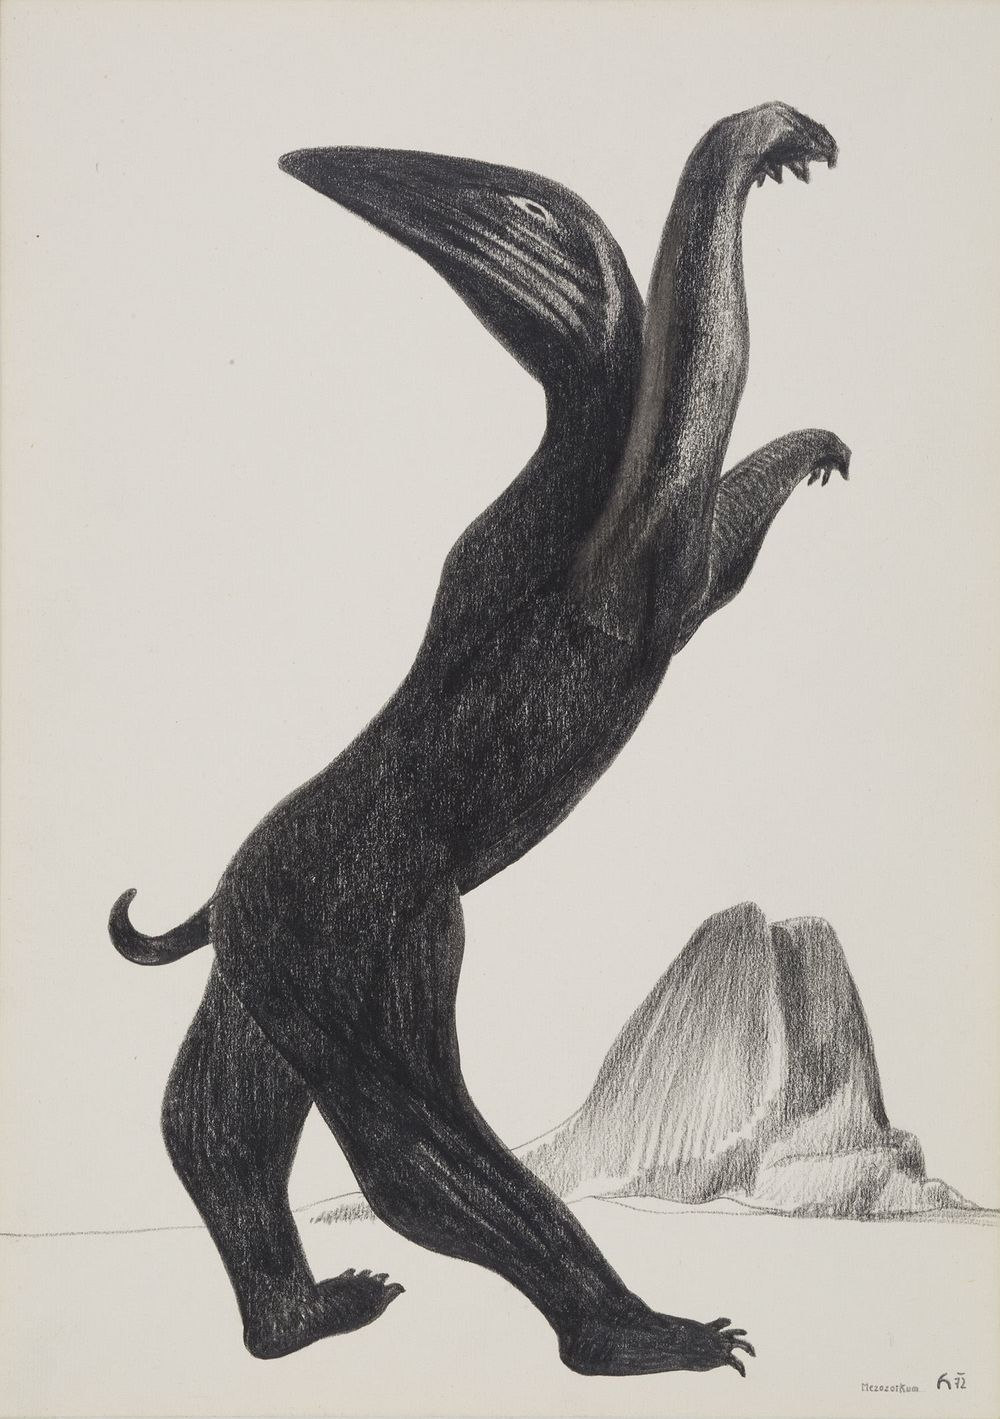 Karel Havlíček    Mezozoikum  , 1972 Pencil on paper 16.54 x 11.81 inches 42 x 30 cm KHav 1